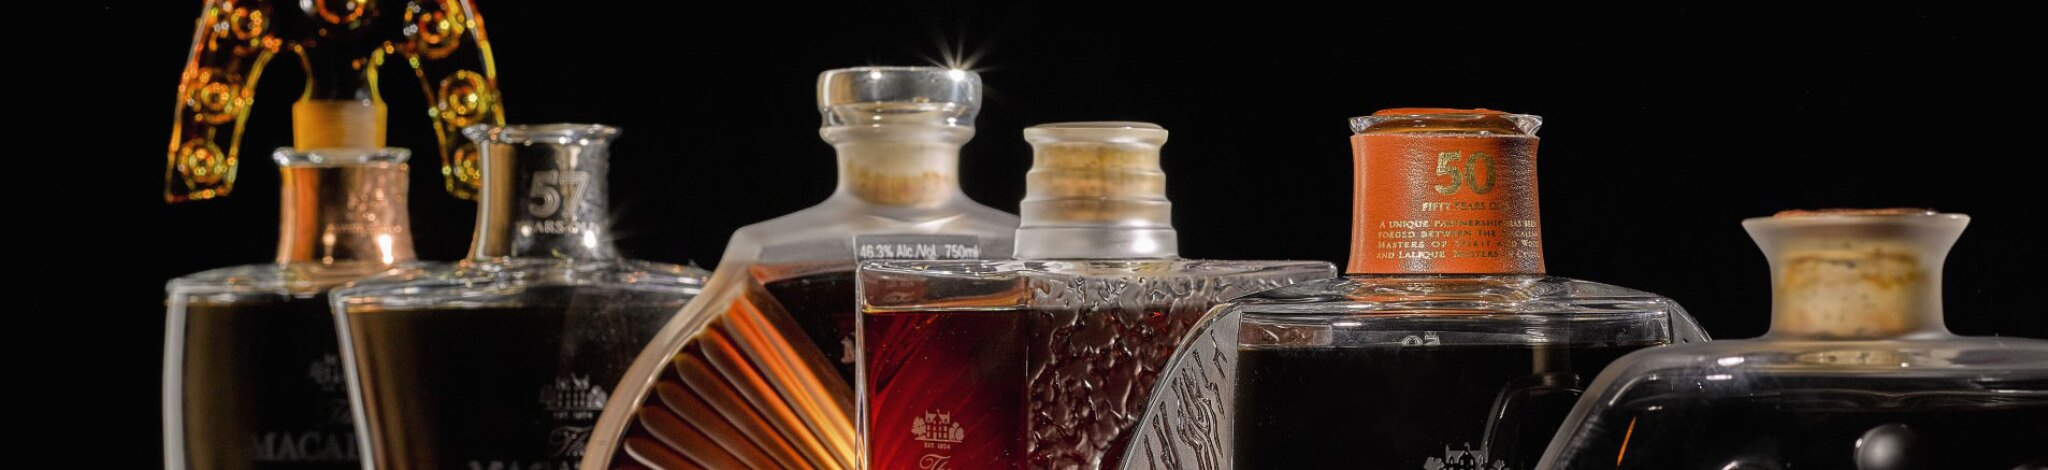 The Ultimate Whisky Collection II, The Macallan Red Collection And More